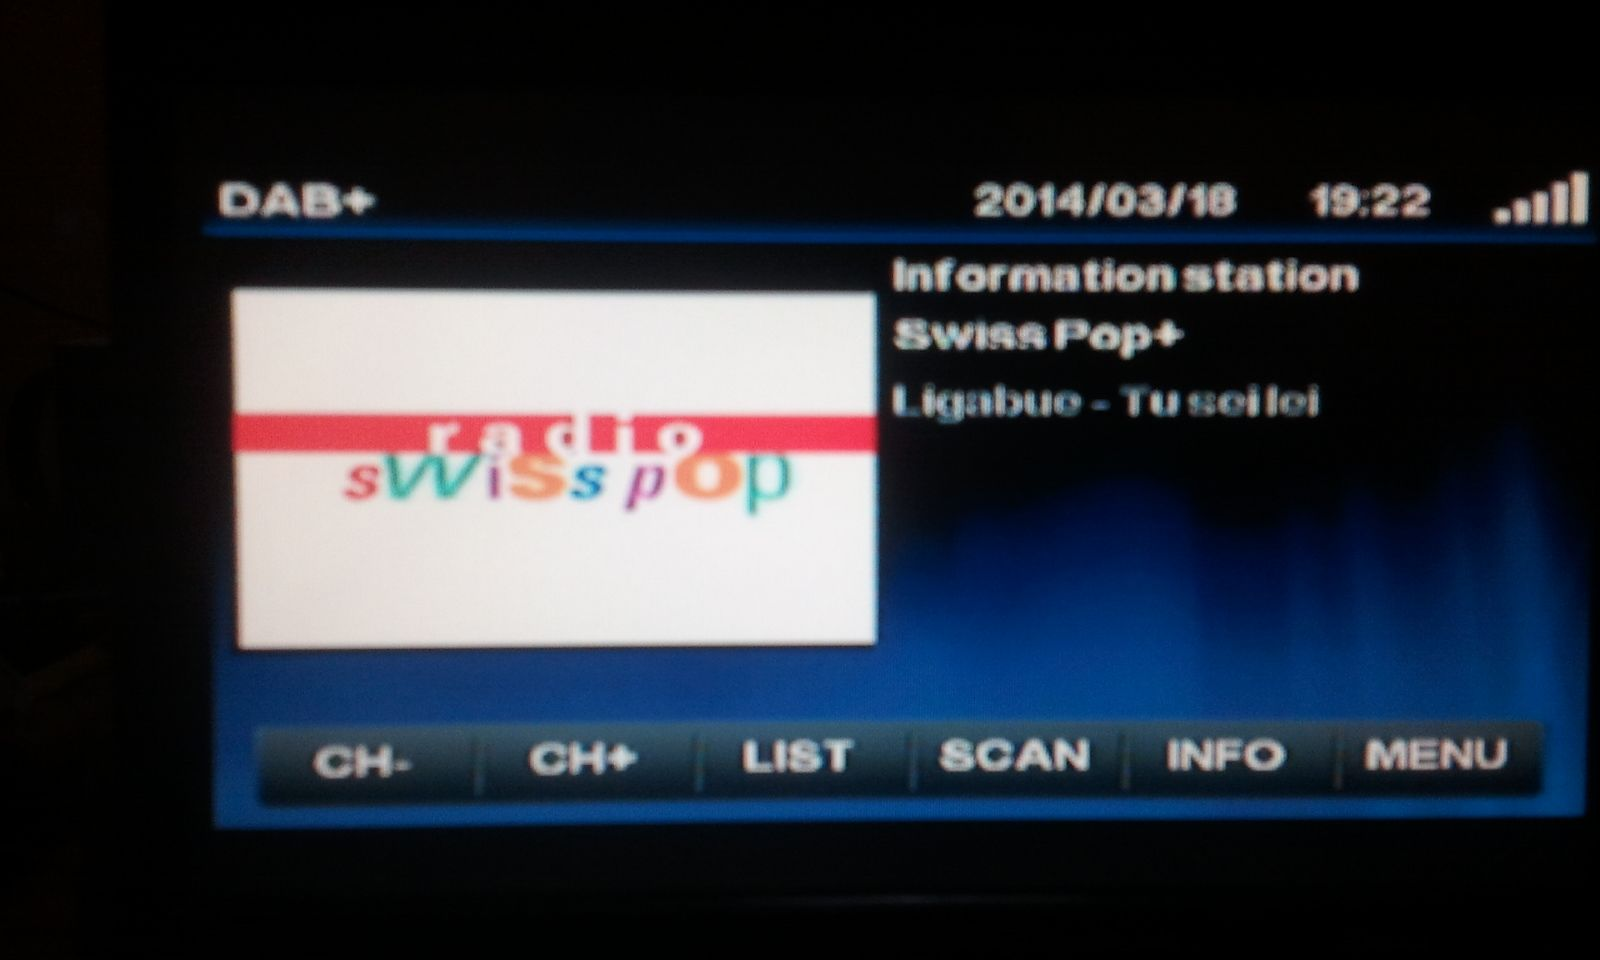 swiss_pop_logo.jpg